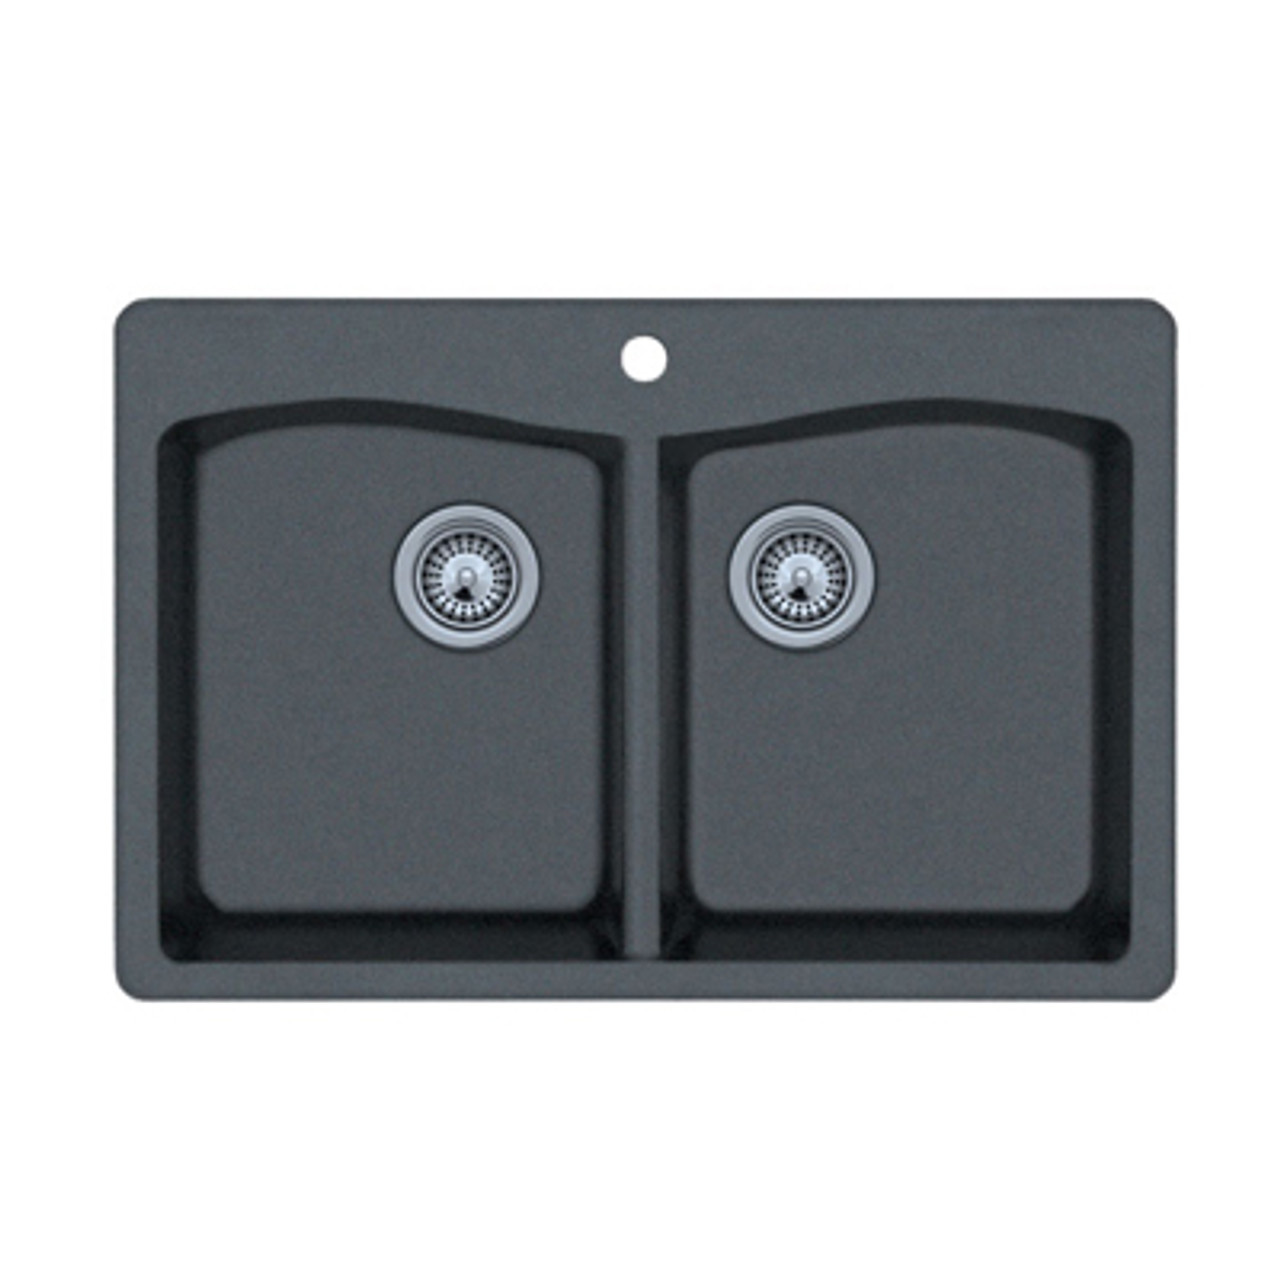 Swanstone Qzed 3322 Drop In Even Double Bowl Granite Kitchen Sink 33 W X 22 D Swanstone Products Eplumbing Products Inc